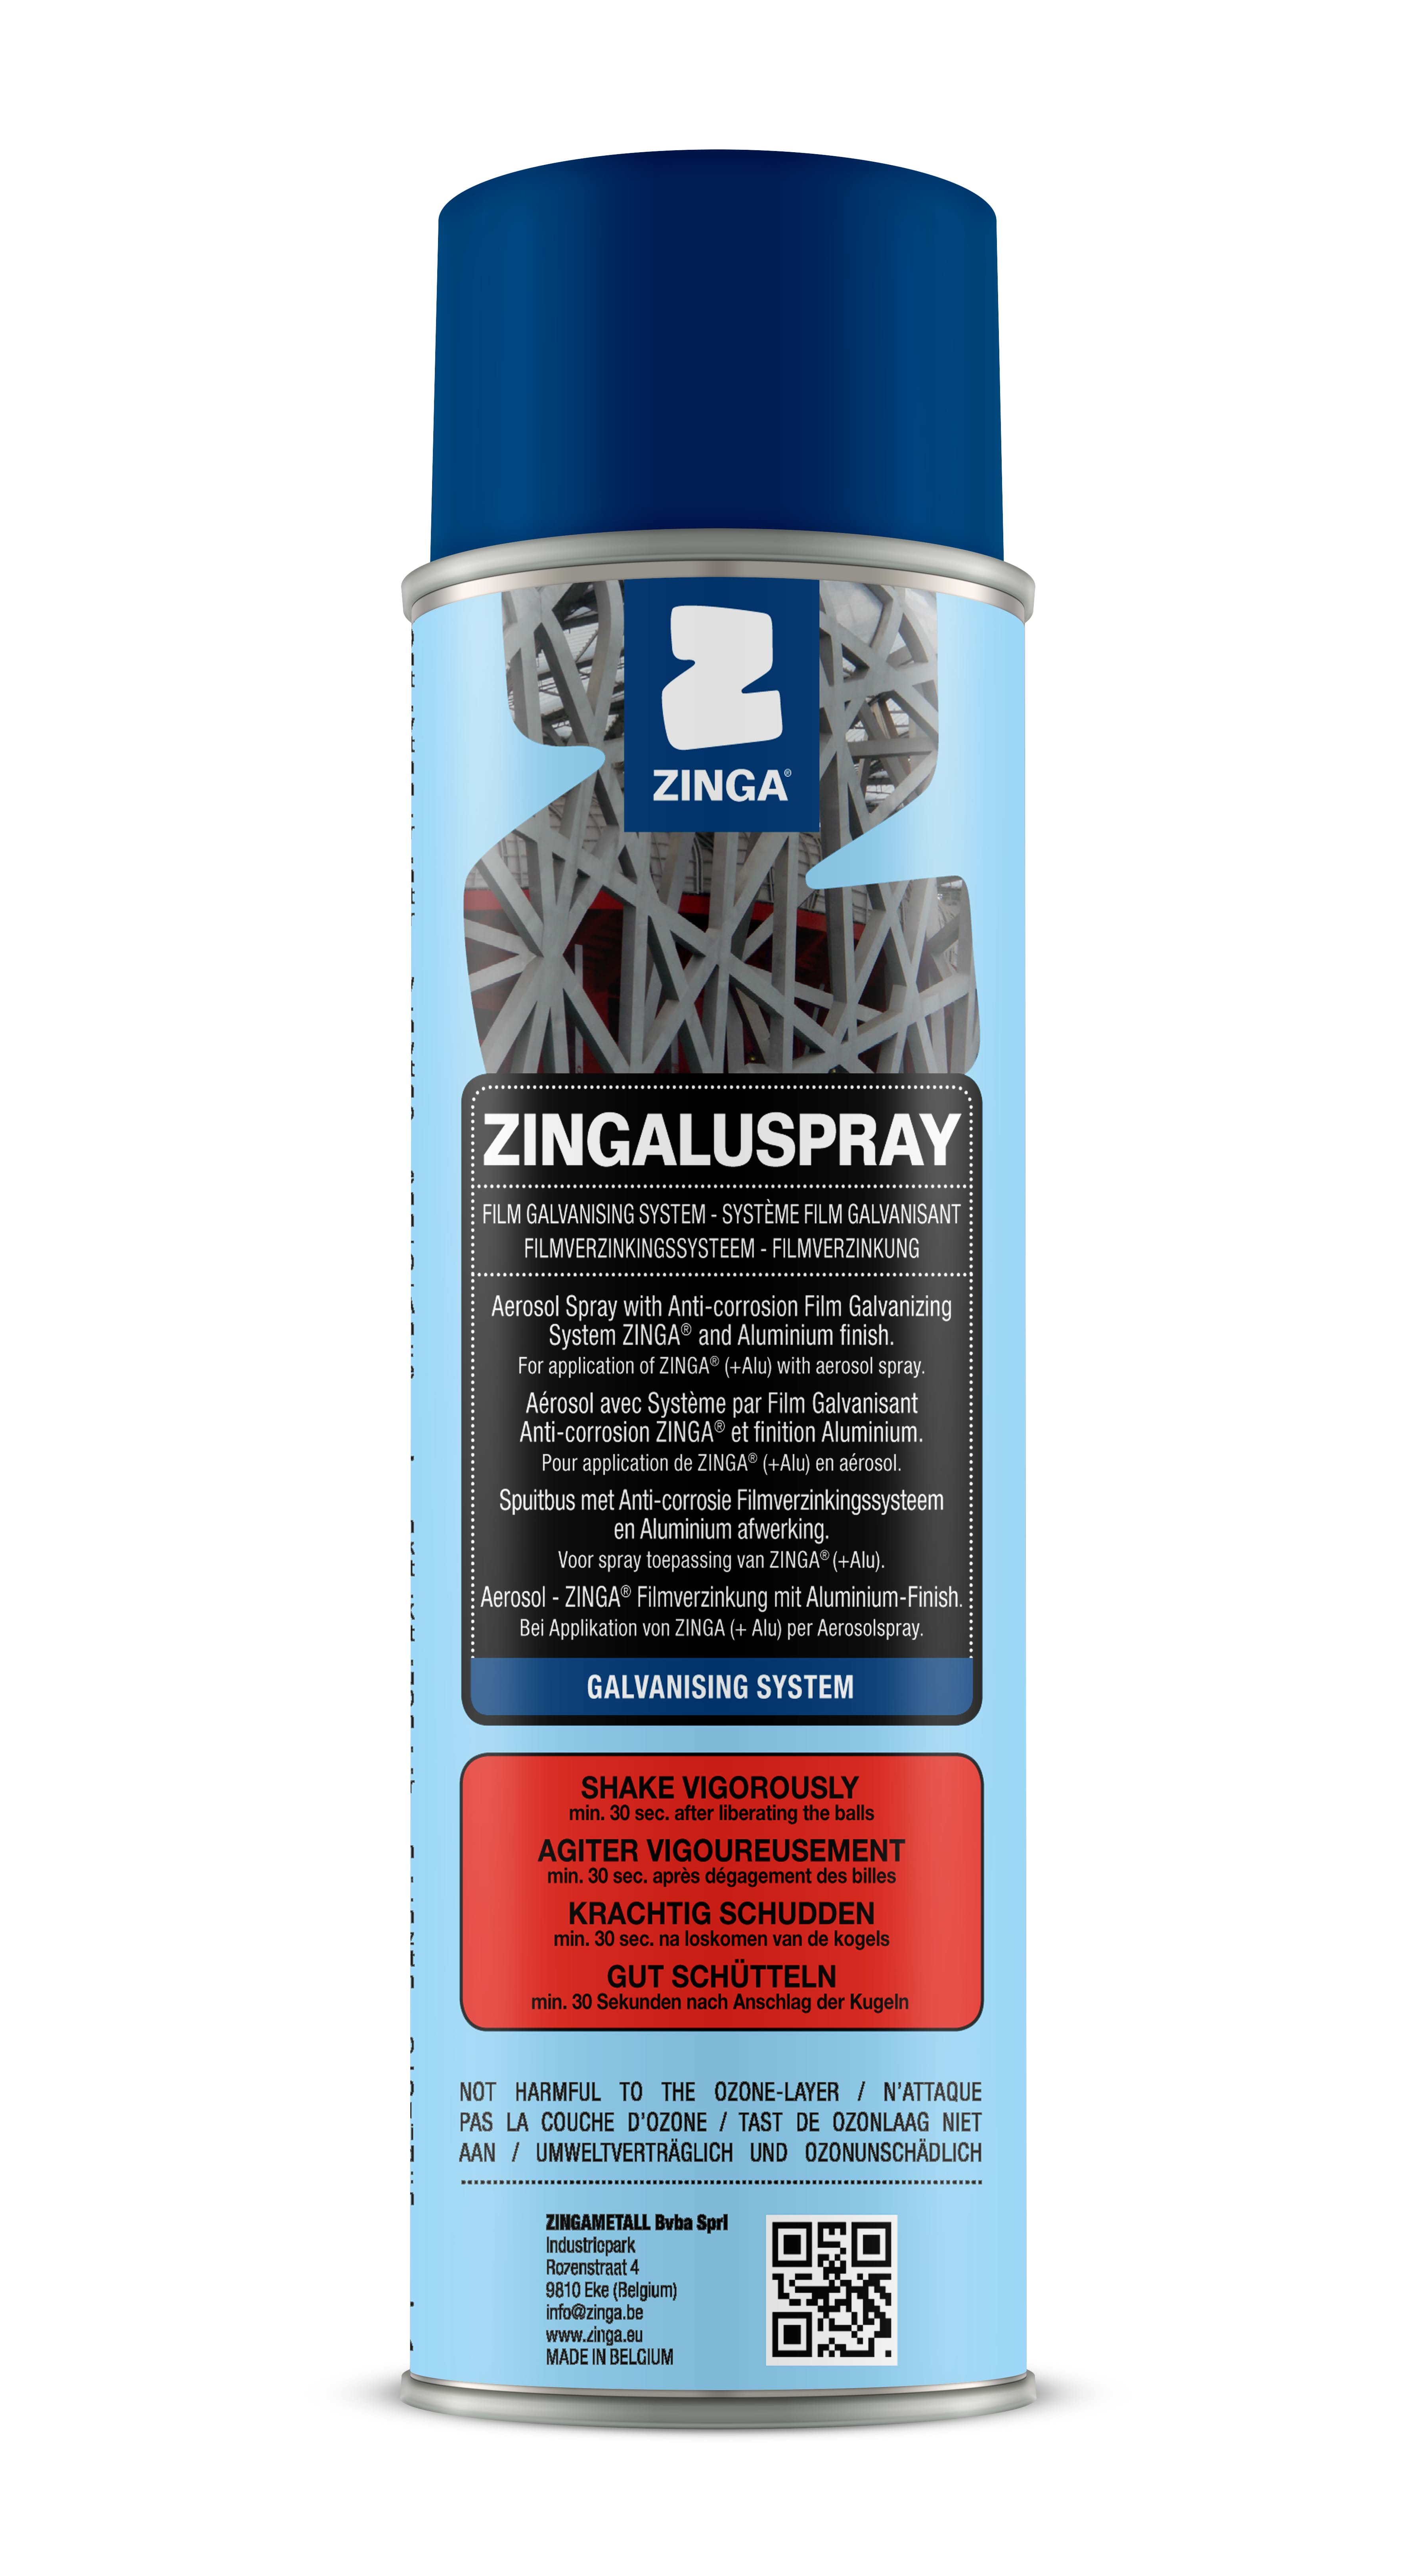 A can of Zingalu Spray